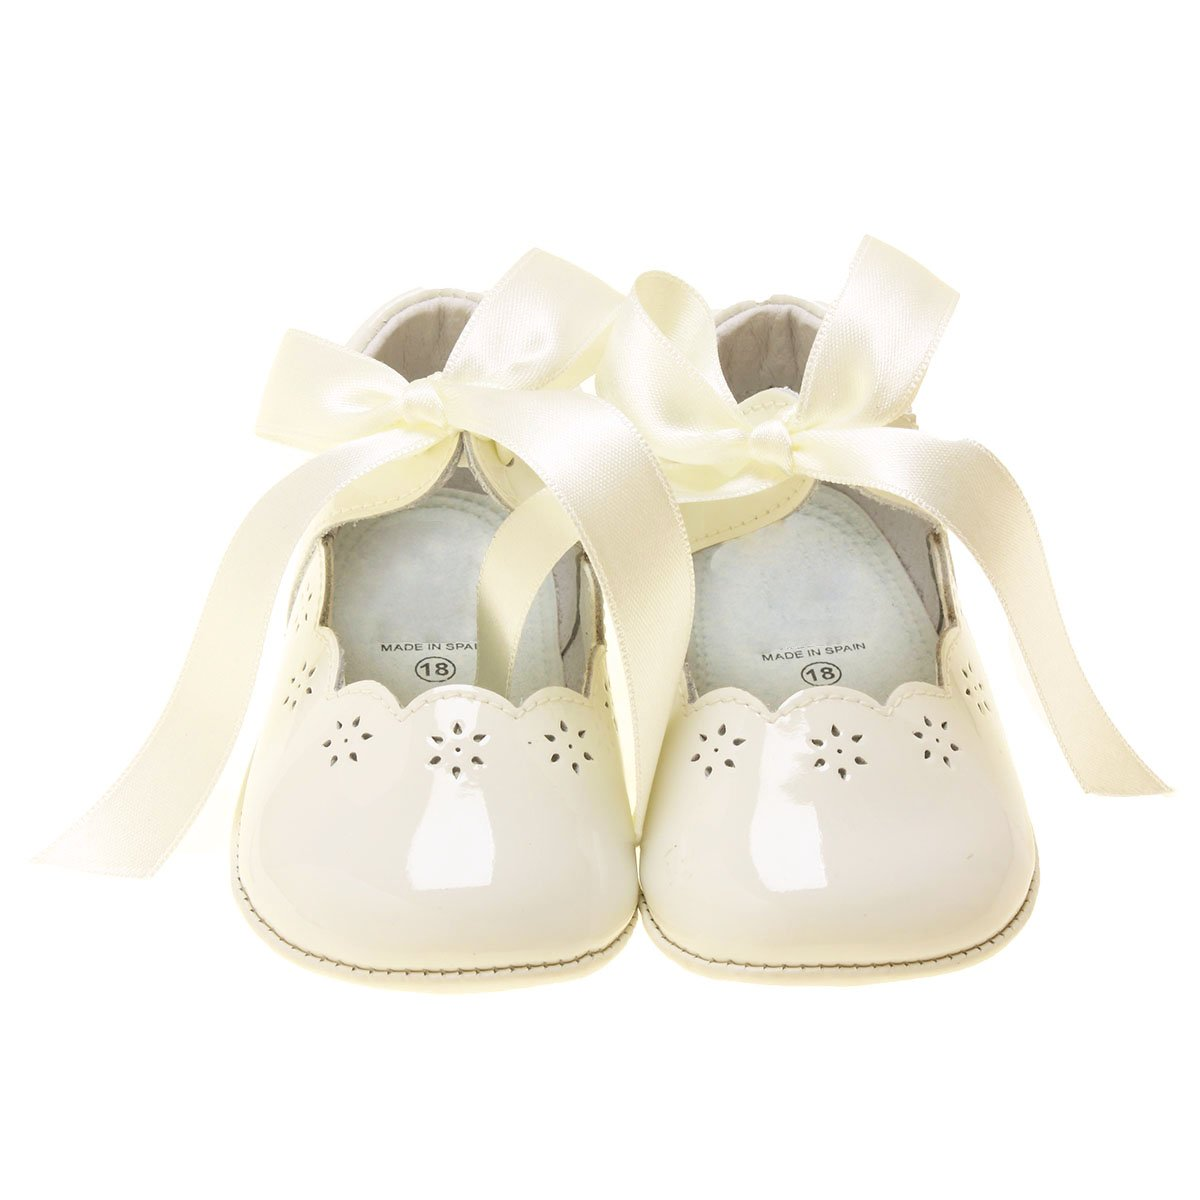 Hand made Spanish Baby Girls Ivory Patent Leather Shoes